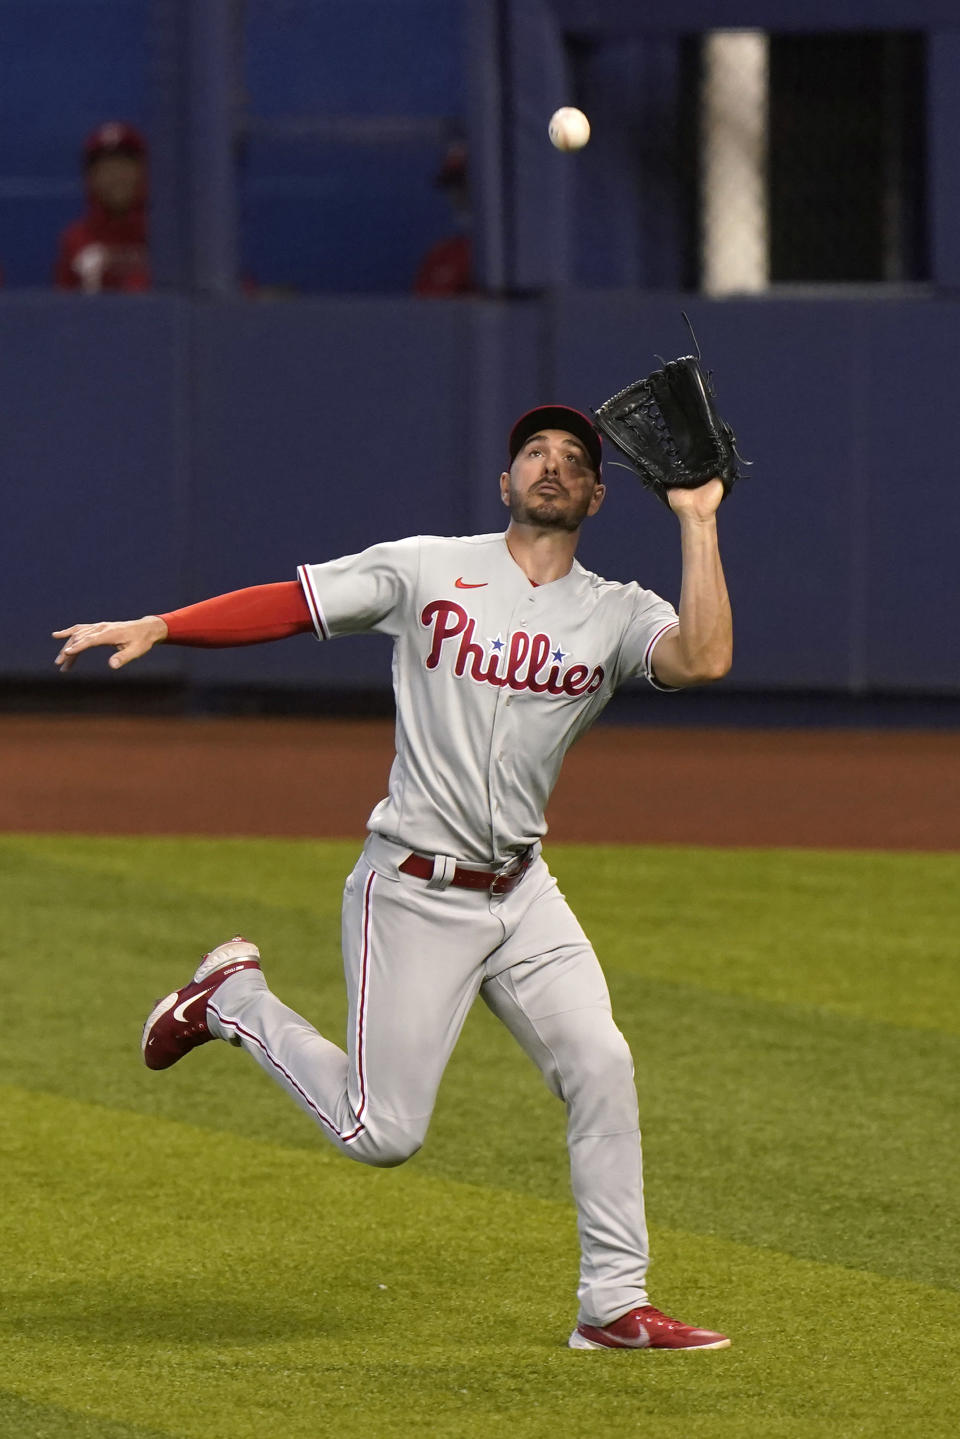 Philadelphia Phillies right fielder Matt Joyce catches a ball hit by Miami Marlins' Jon Berti during the second inning of a baseball game, Thursday, May 27, 2021, in Miami. (AP Photo/Wilfredo Lee)